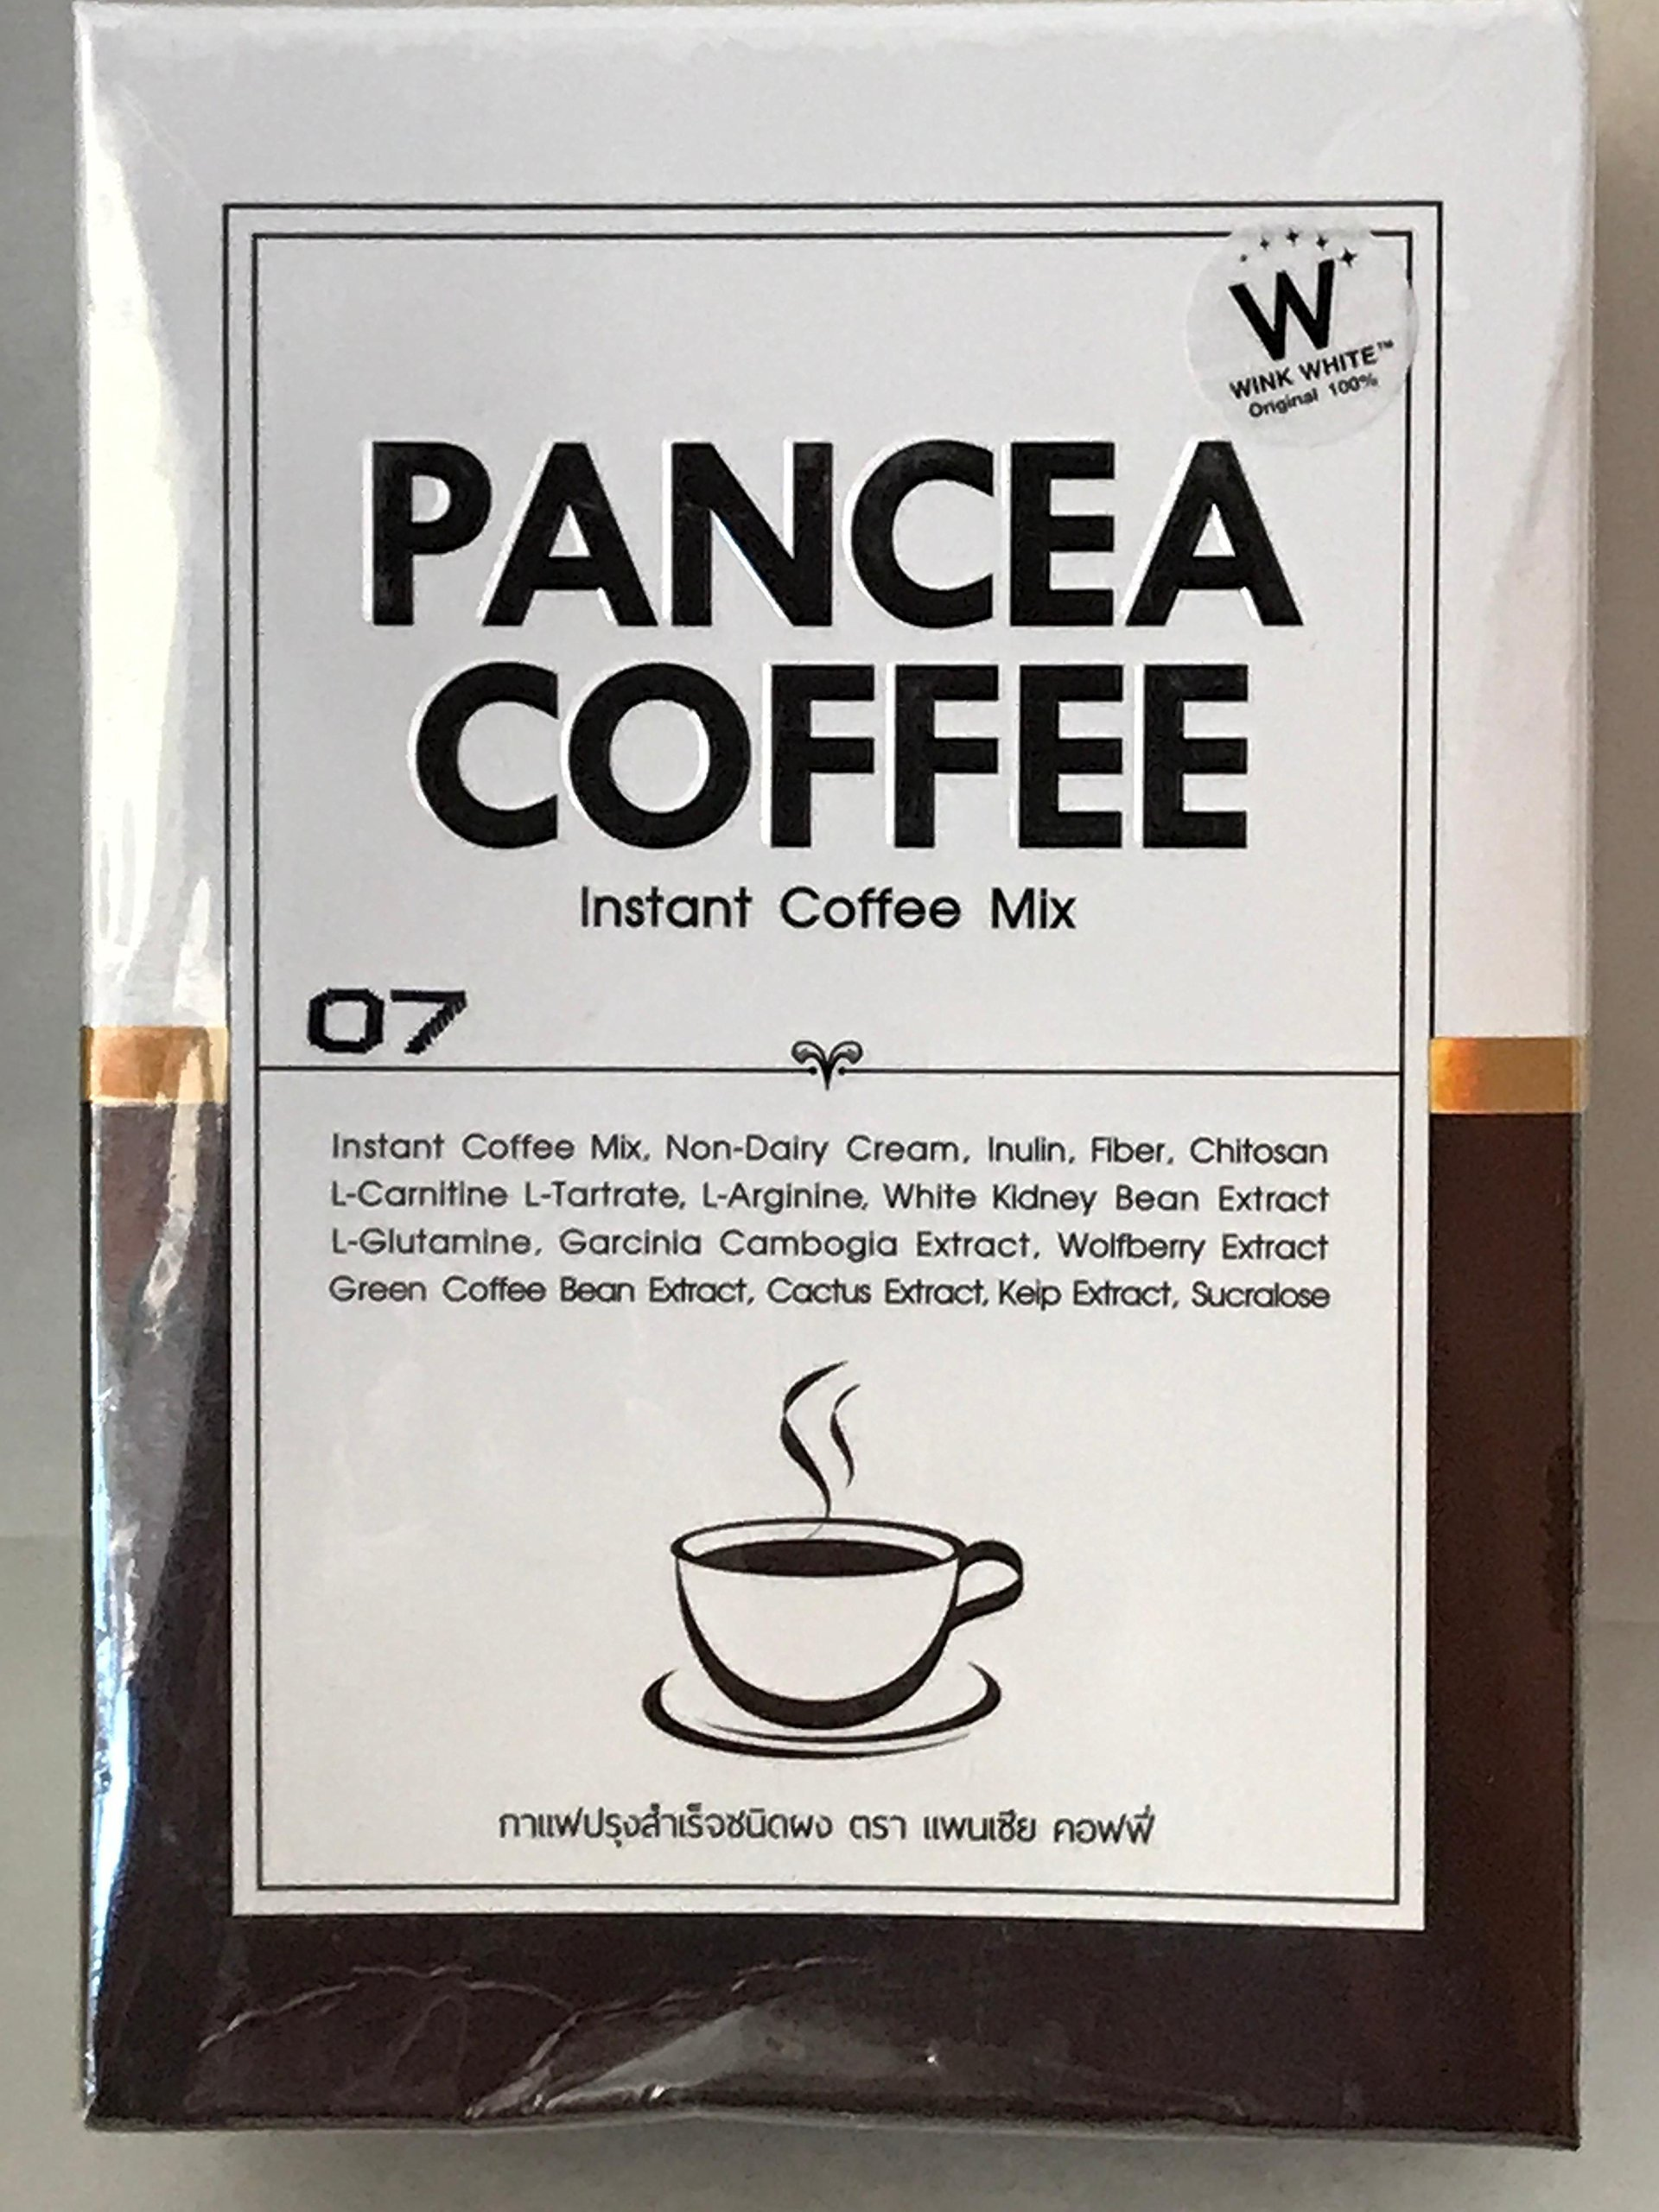 PANCEA COFFEE instant coffee mix, 10 sacks (Pack of 6) by Wink White